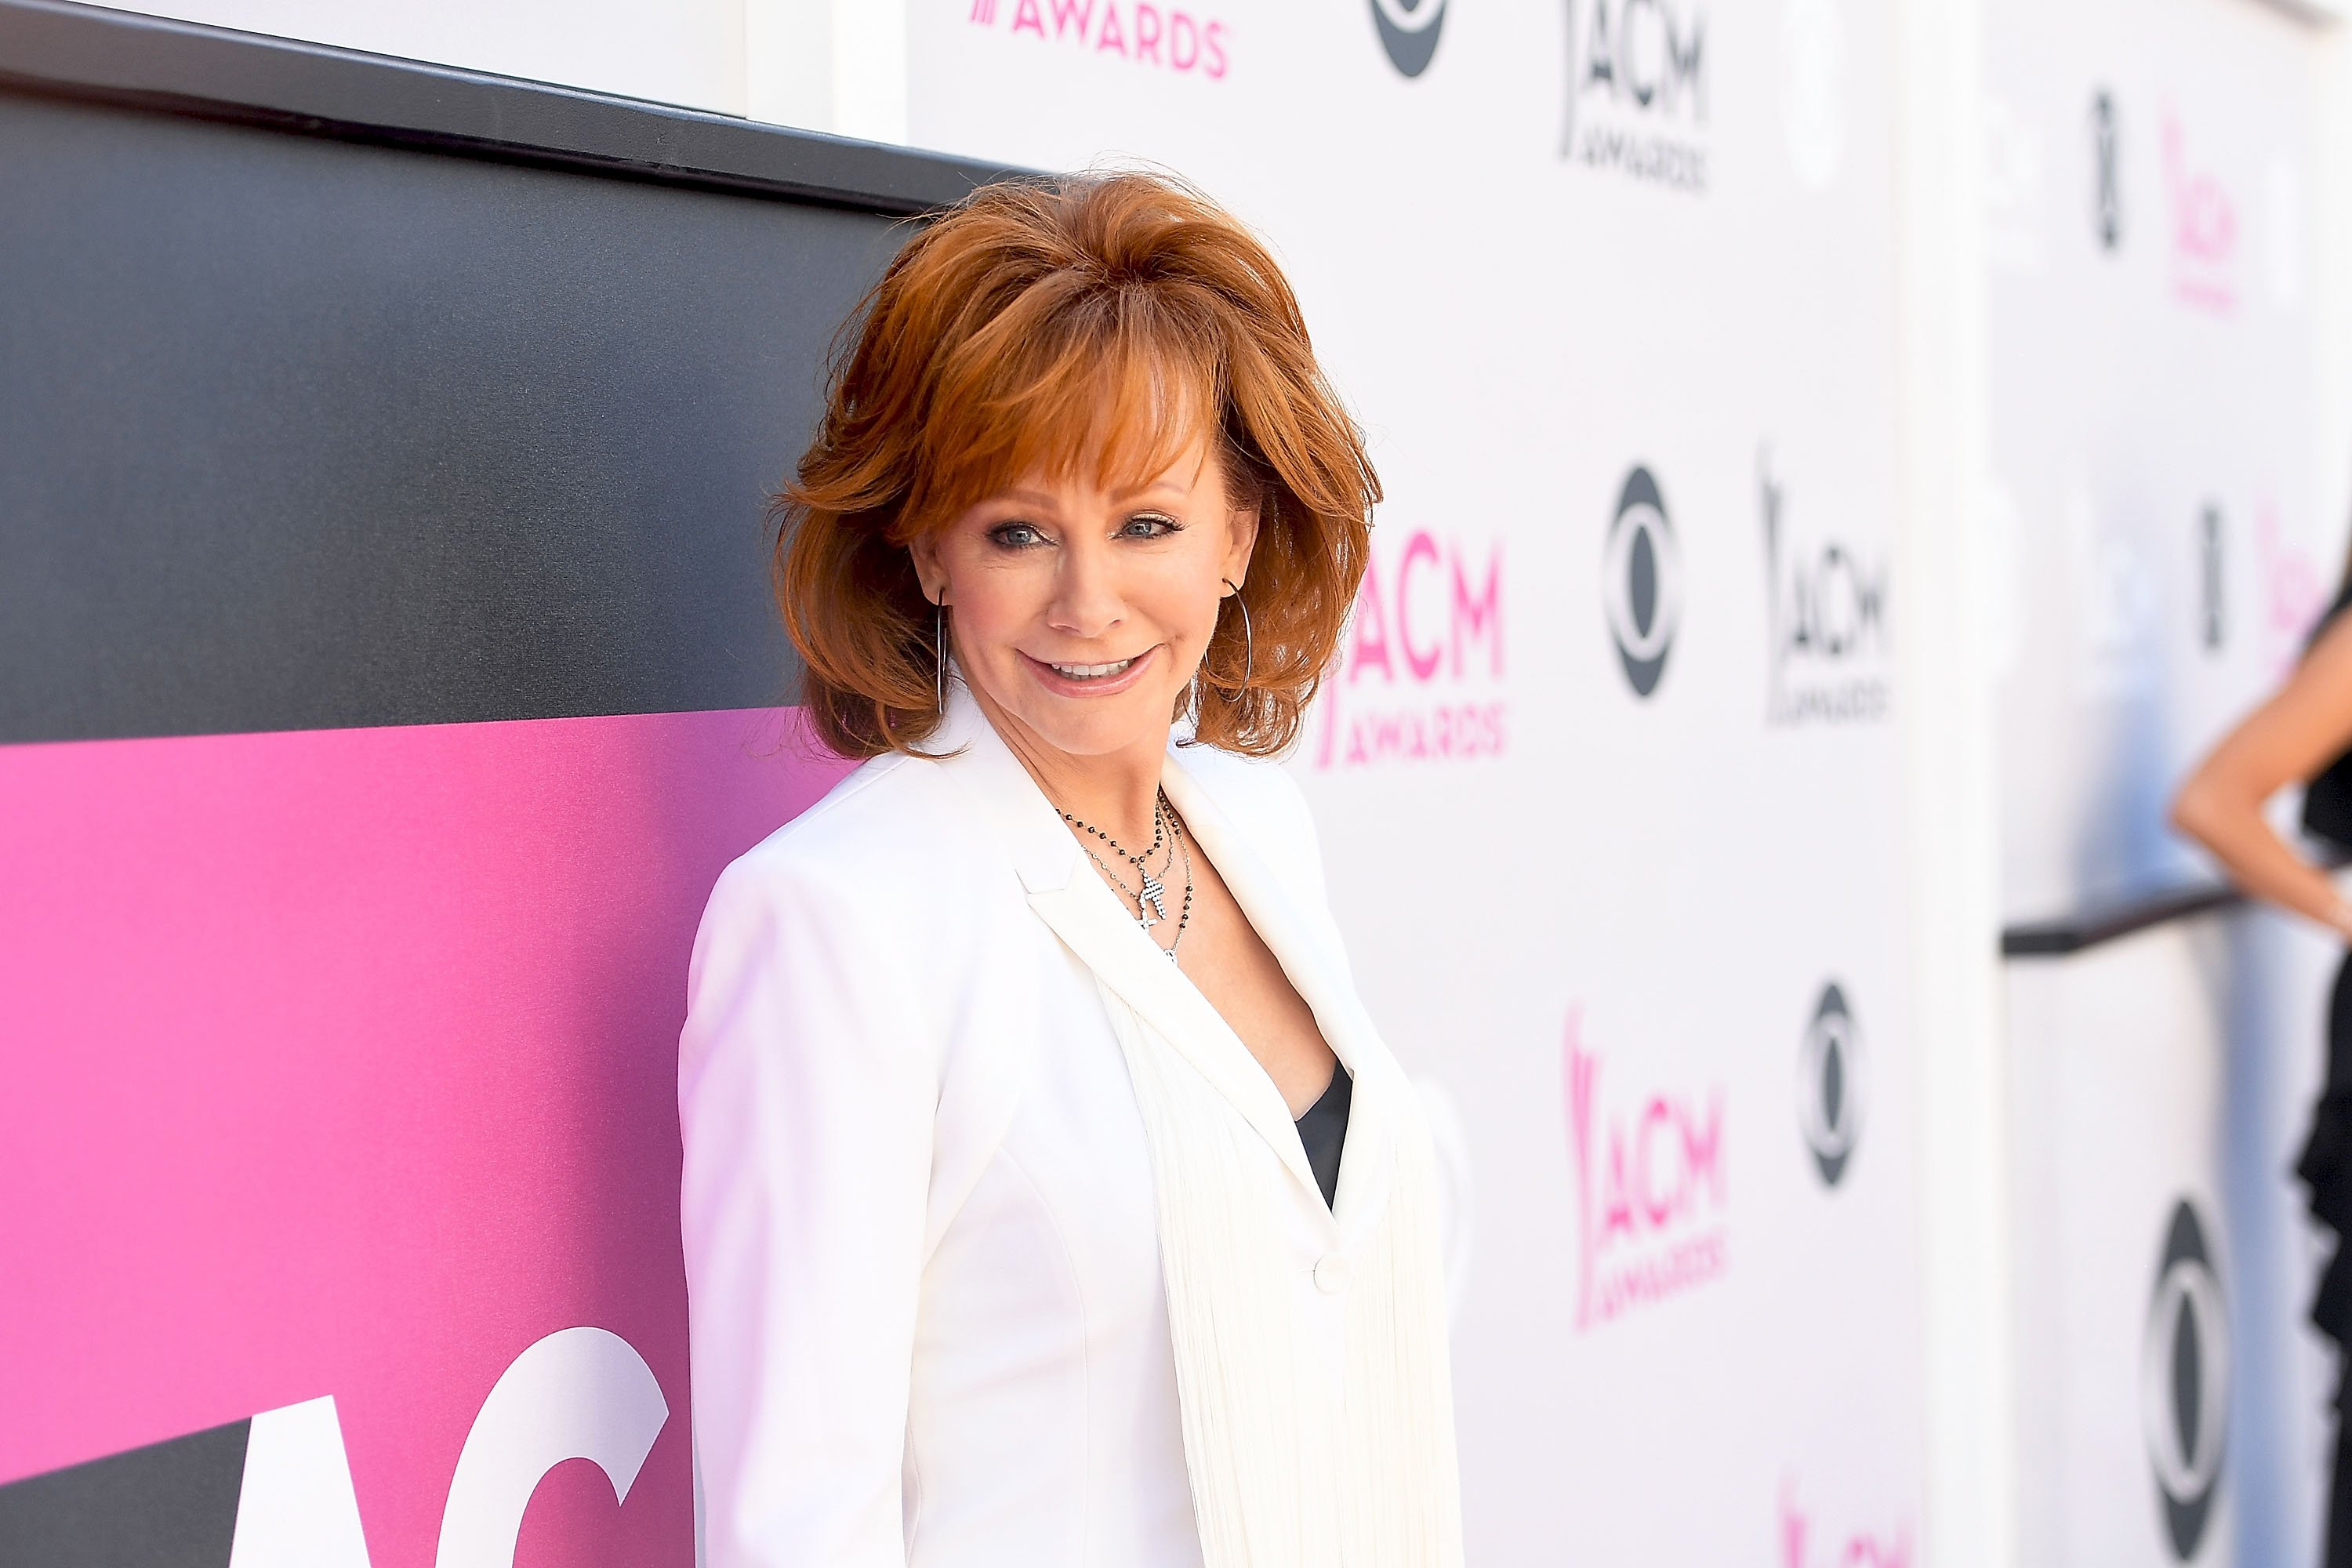 Image Credits: Getty Images | Reba McEntire is one of the most successful country artists